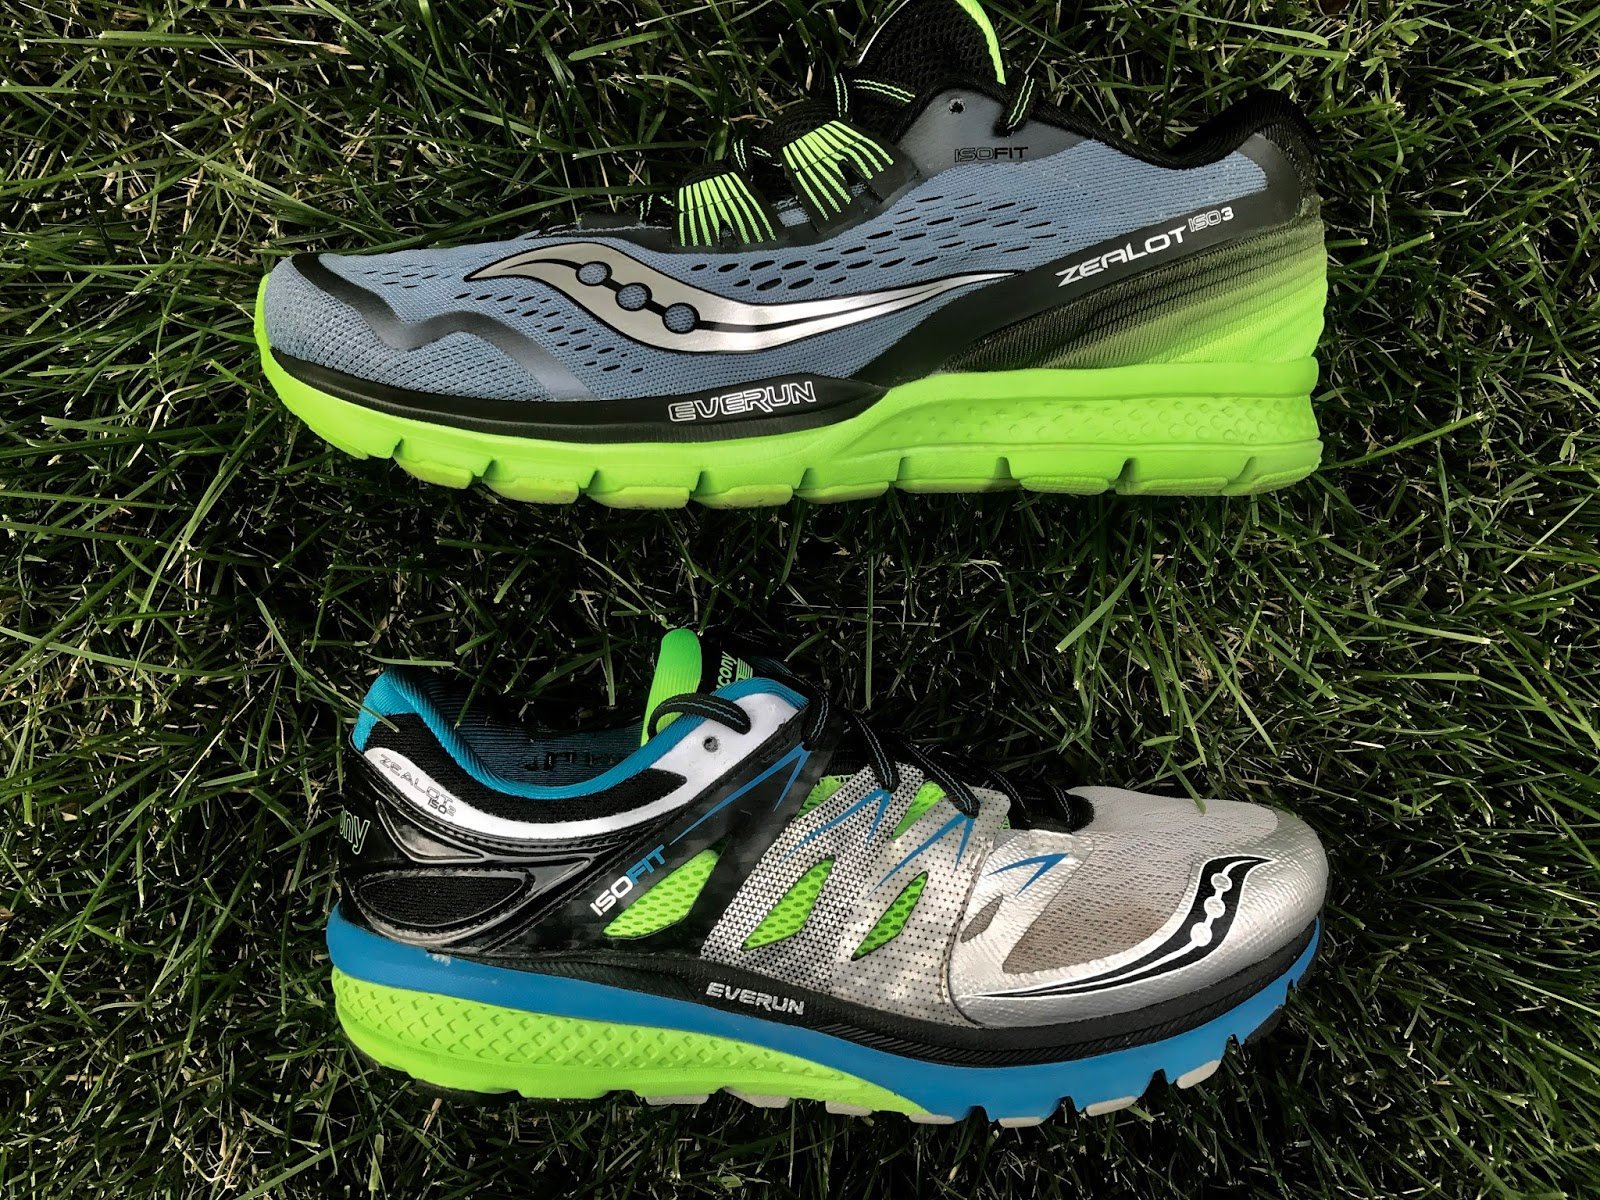 9a808e97d200 Sam  The ISO 3 gets a completely new soft unstructured engineered mesh upper  with interior ISO Fit straps replacing the stiff silver outer straps of the  ISO ...